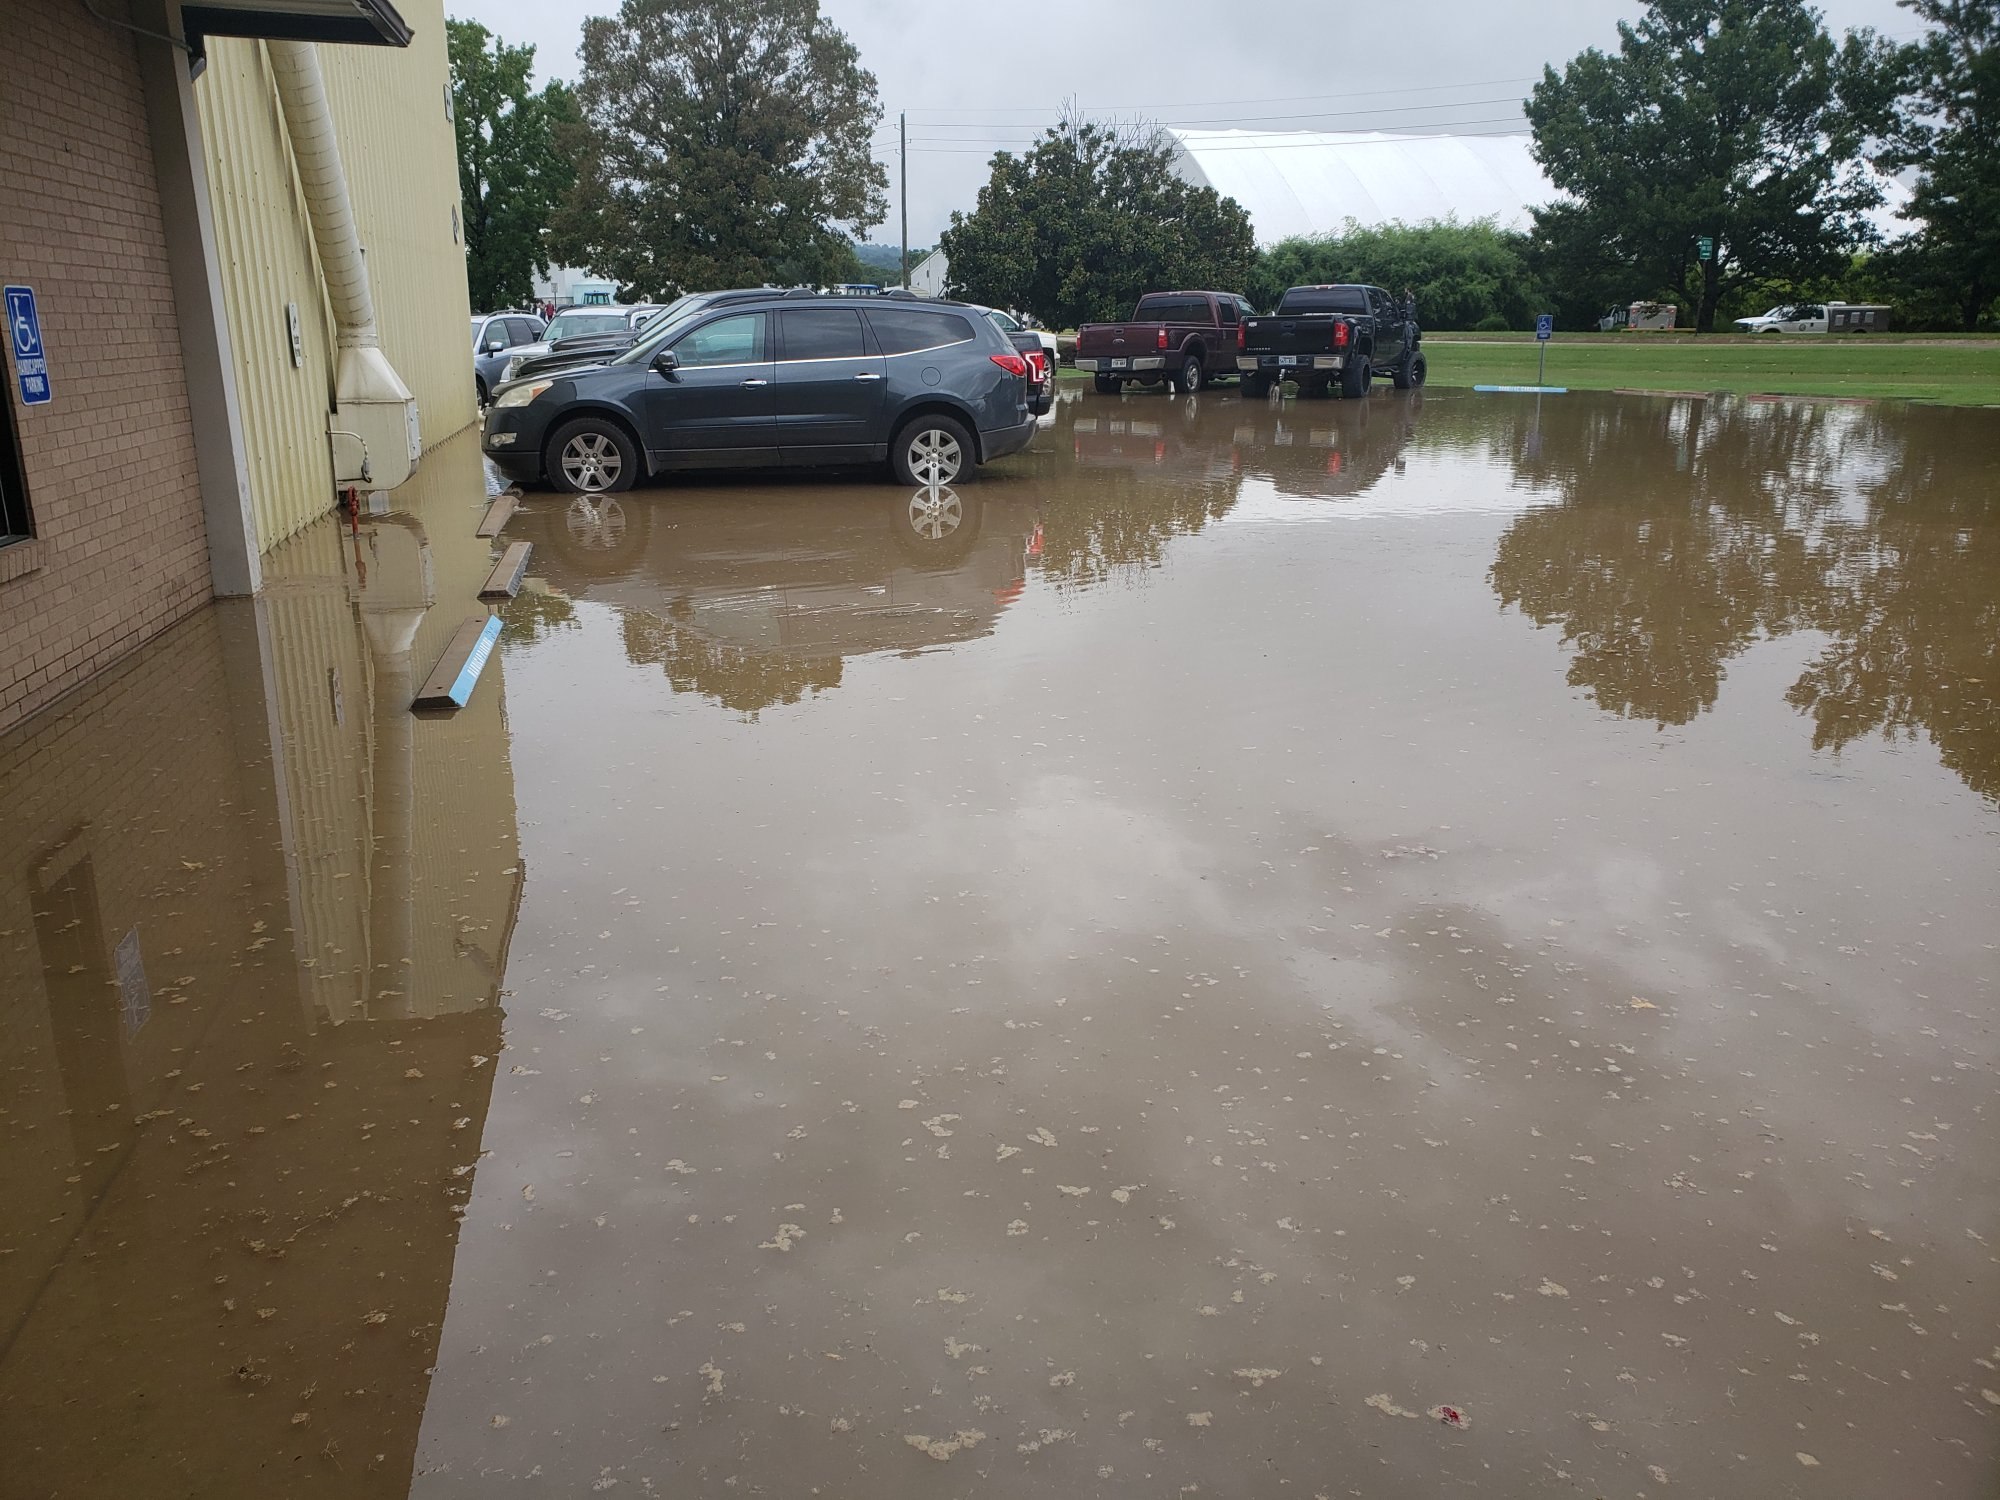 A massive water leak flooded the parking lot of Packaging Specialties in Fayetteville on Aug. 22, 2019.